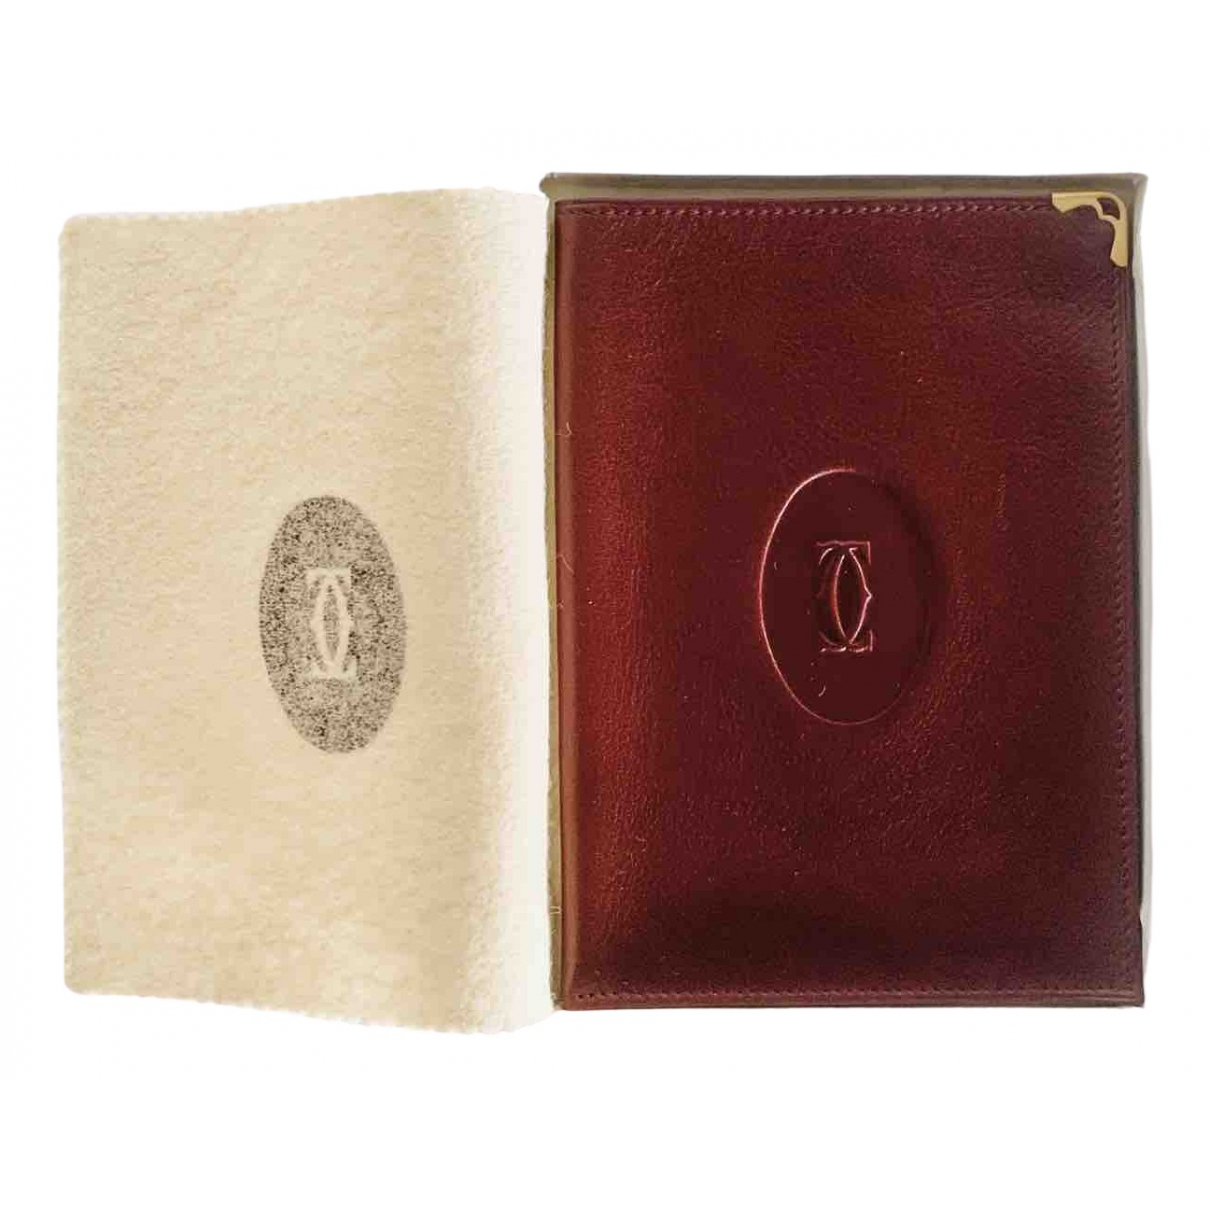 Cartier N Burgundy Leather Purses, wallet & cases for Women N